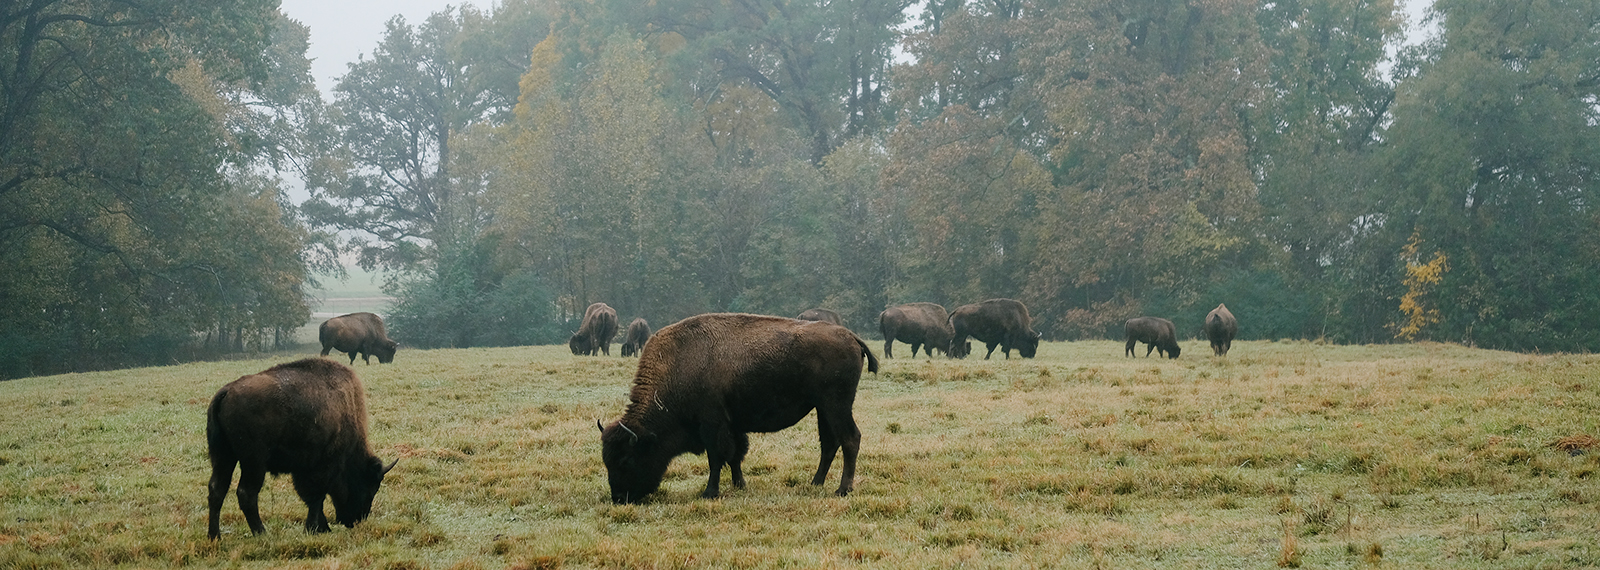 Grazing bison on a foggy morning at Shelby Farms Park. (Brandon Dahlberg)